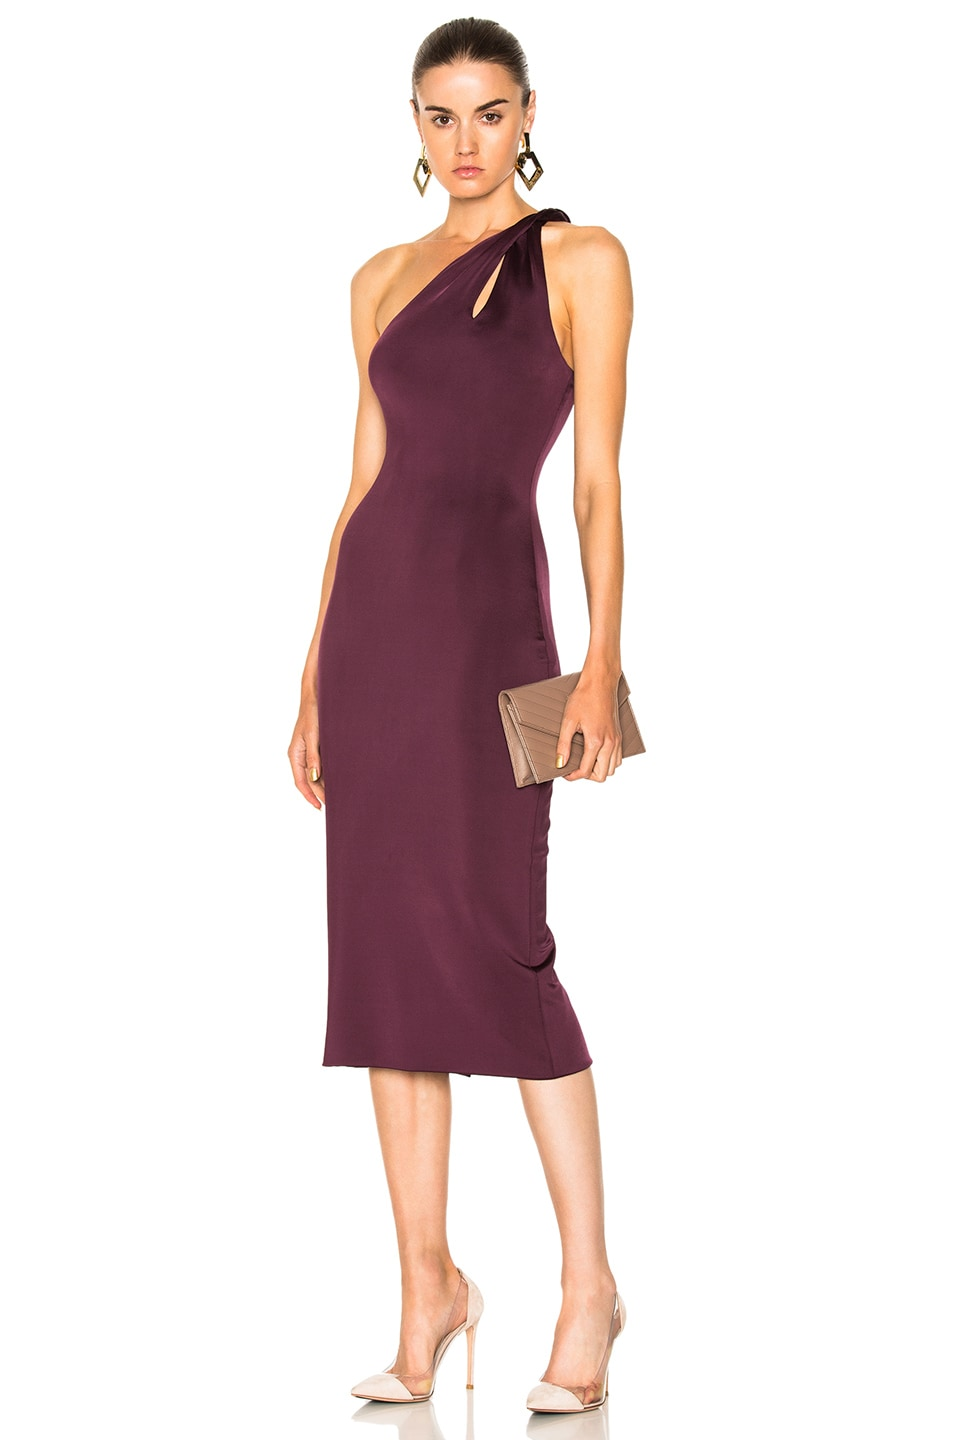 Cushnie et Ochs One Shoulder Dress with Twisted Strap in Purple